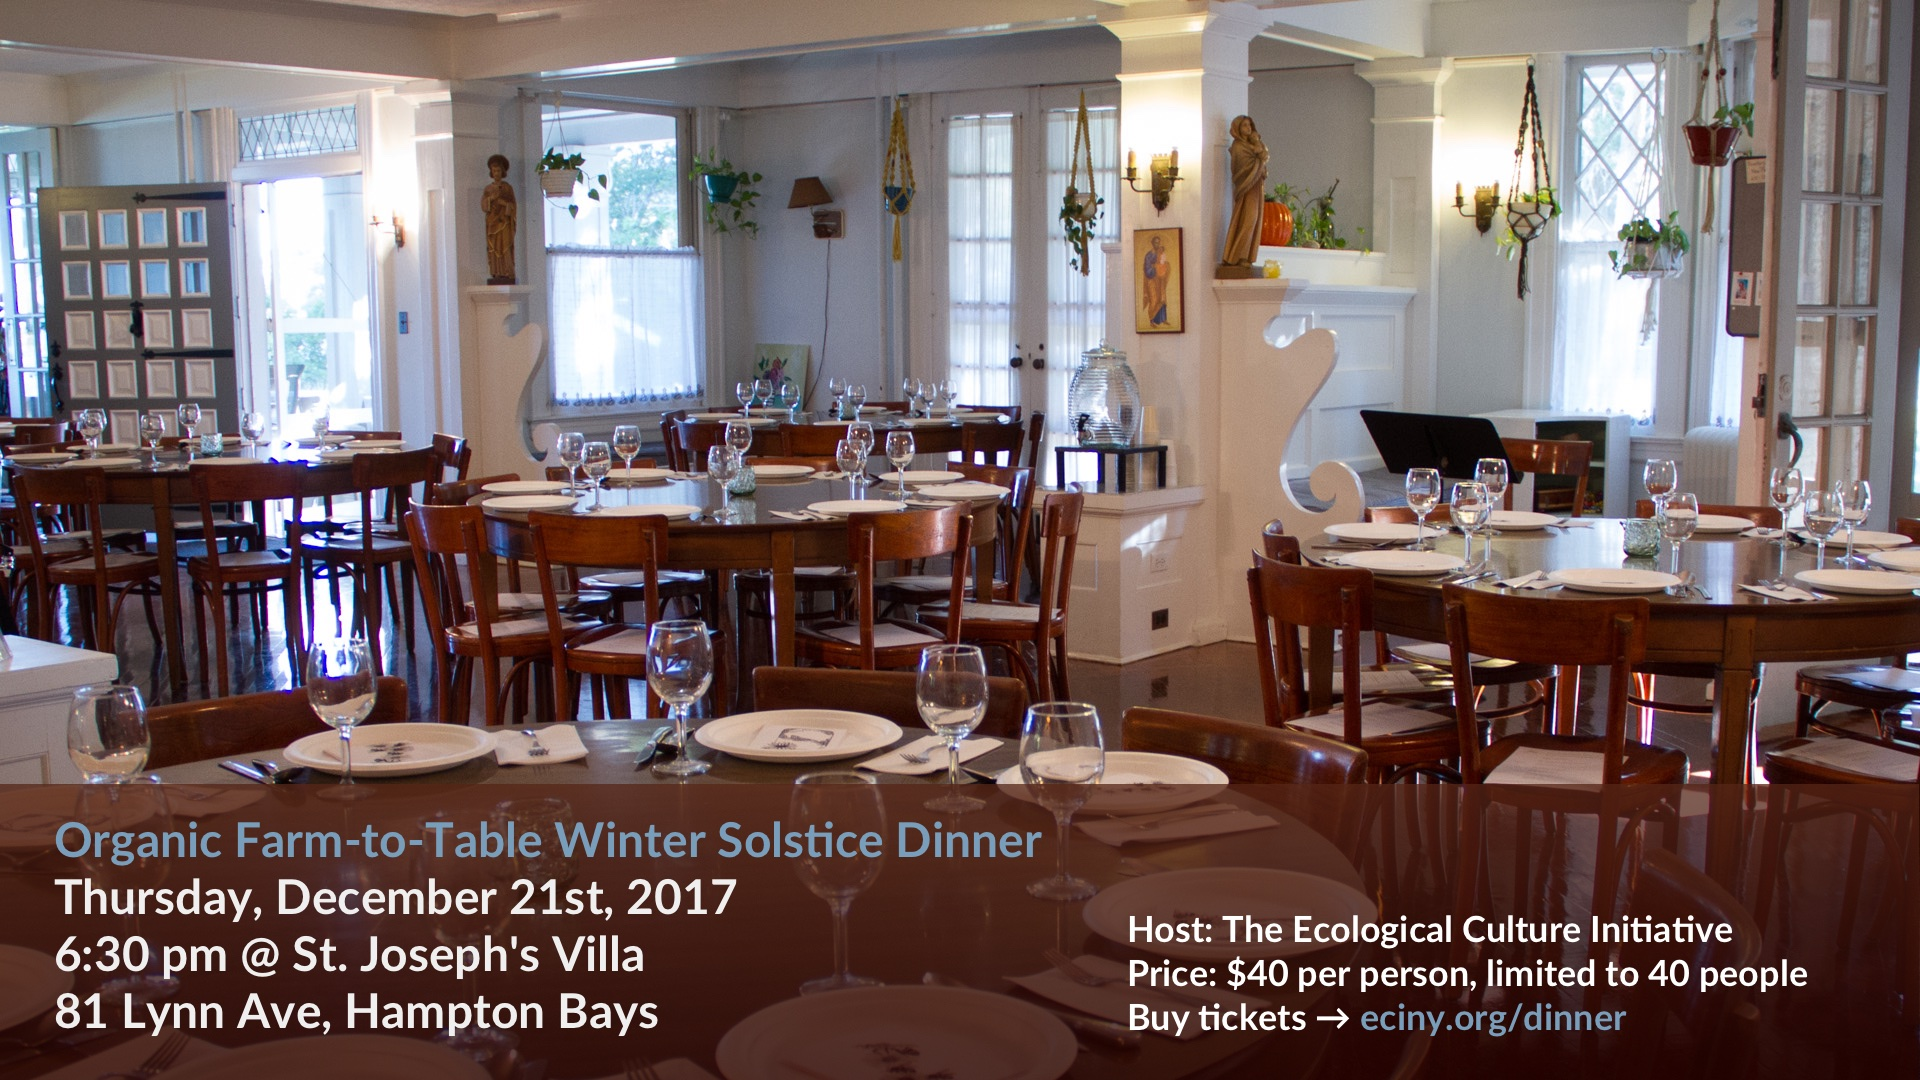 Organic Farm-to-Table Winter Solstice Dinner - December 21st, 2017 - FB cover 1920x1080.jpg